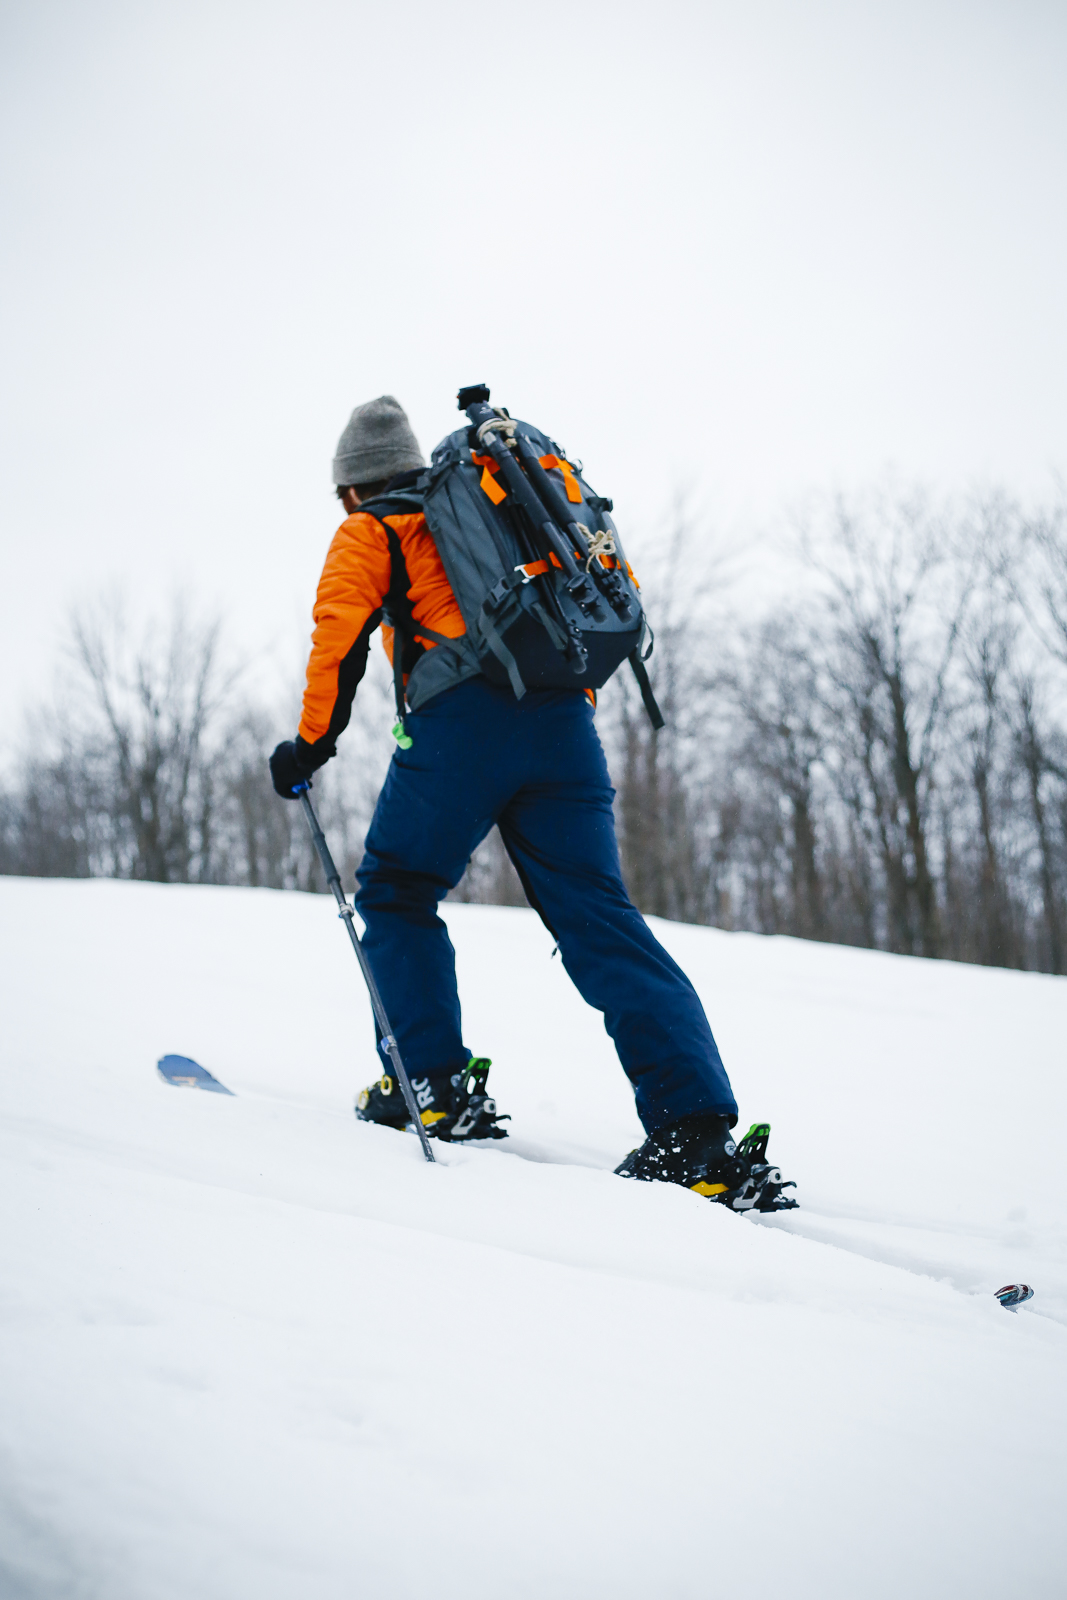 Going where no one else is, is the best. We skinned up a hill and took some ski shots one evening with the Lowepro Whistle 350.